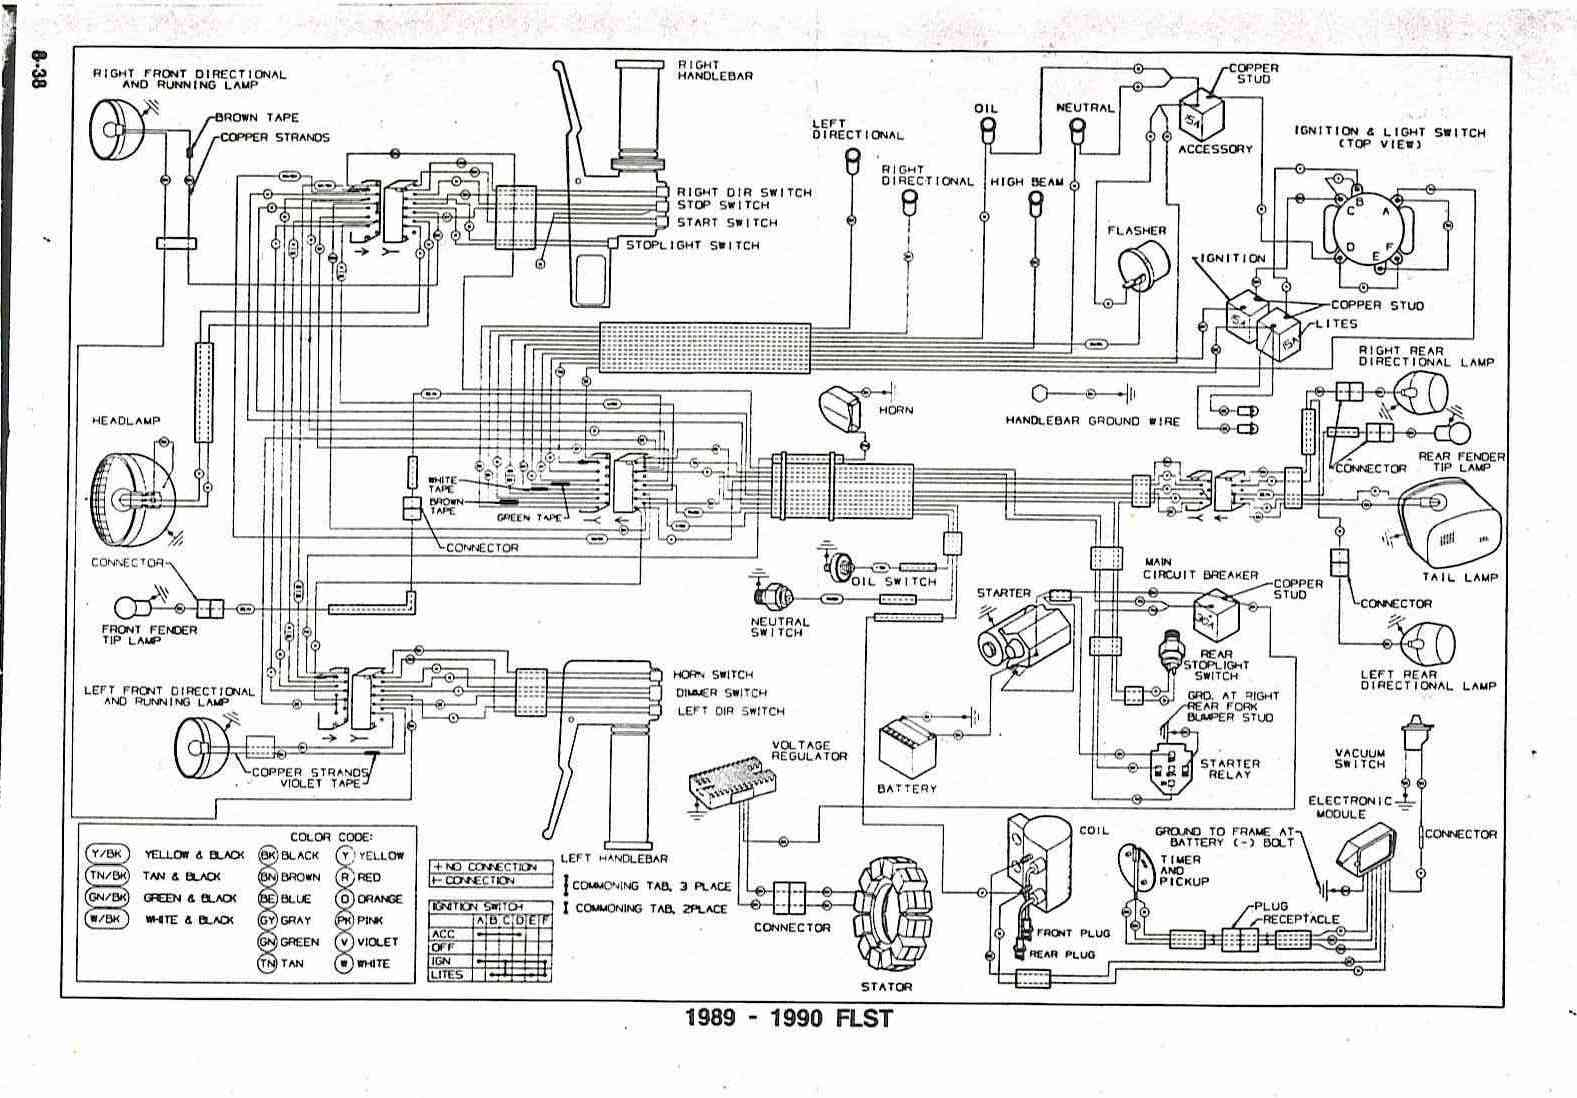 2009 harley davidson deluxe wiring diagram exclusive circuit rh internationalsportsoutlet co 1999 harley softail wiring diagram harley davidson softail wiring diagram